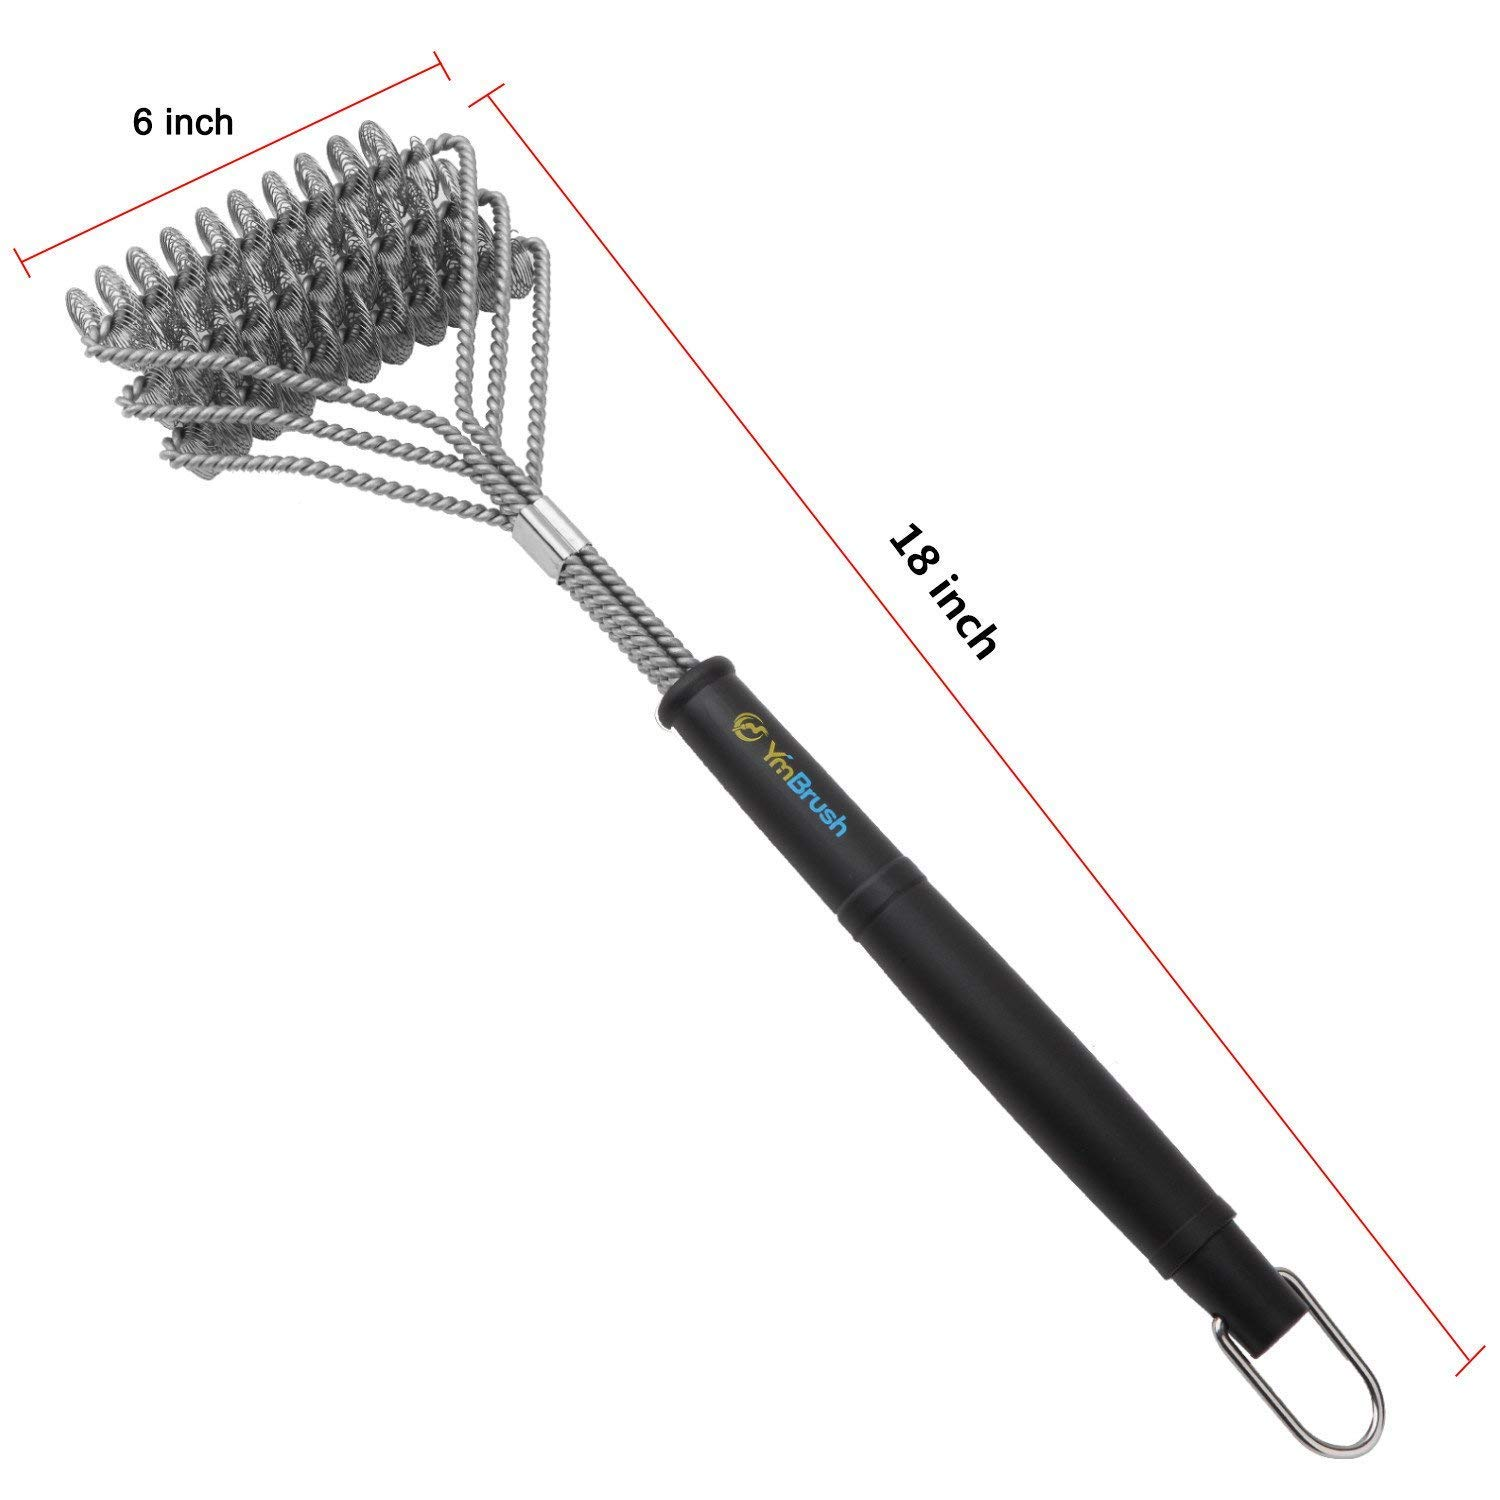 Grill Brush YmBrush Bristle Free Barbecue Cleaning Brush Made with 100% Rust Resistant Stainless Steel Safe for Ceramic, Iron, Gas & Porcelain BBQ Grates Great BBQ Accessories